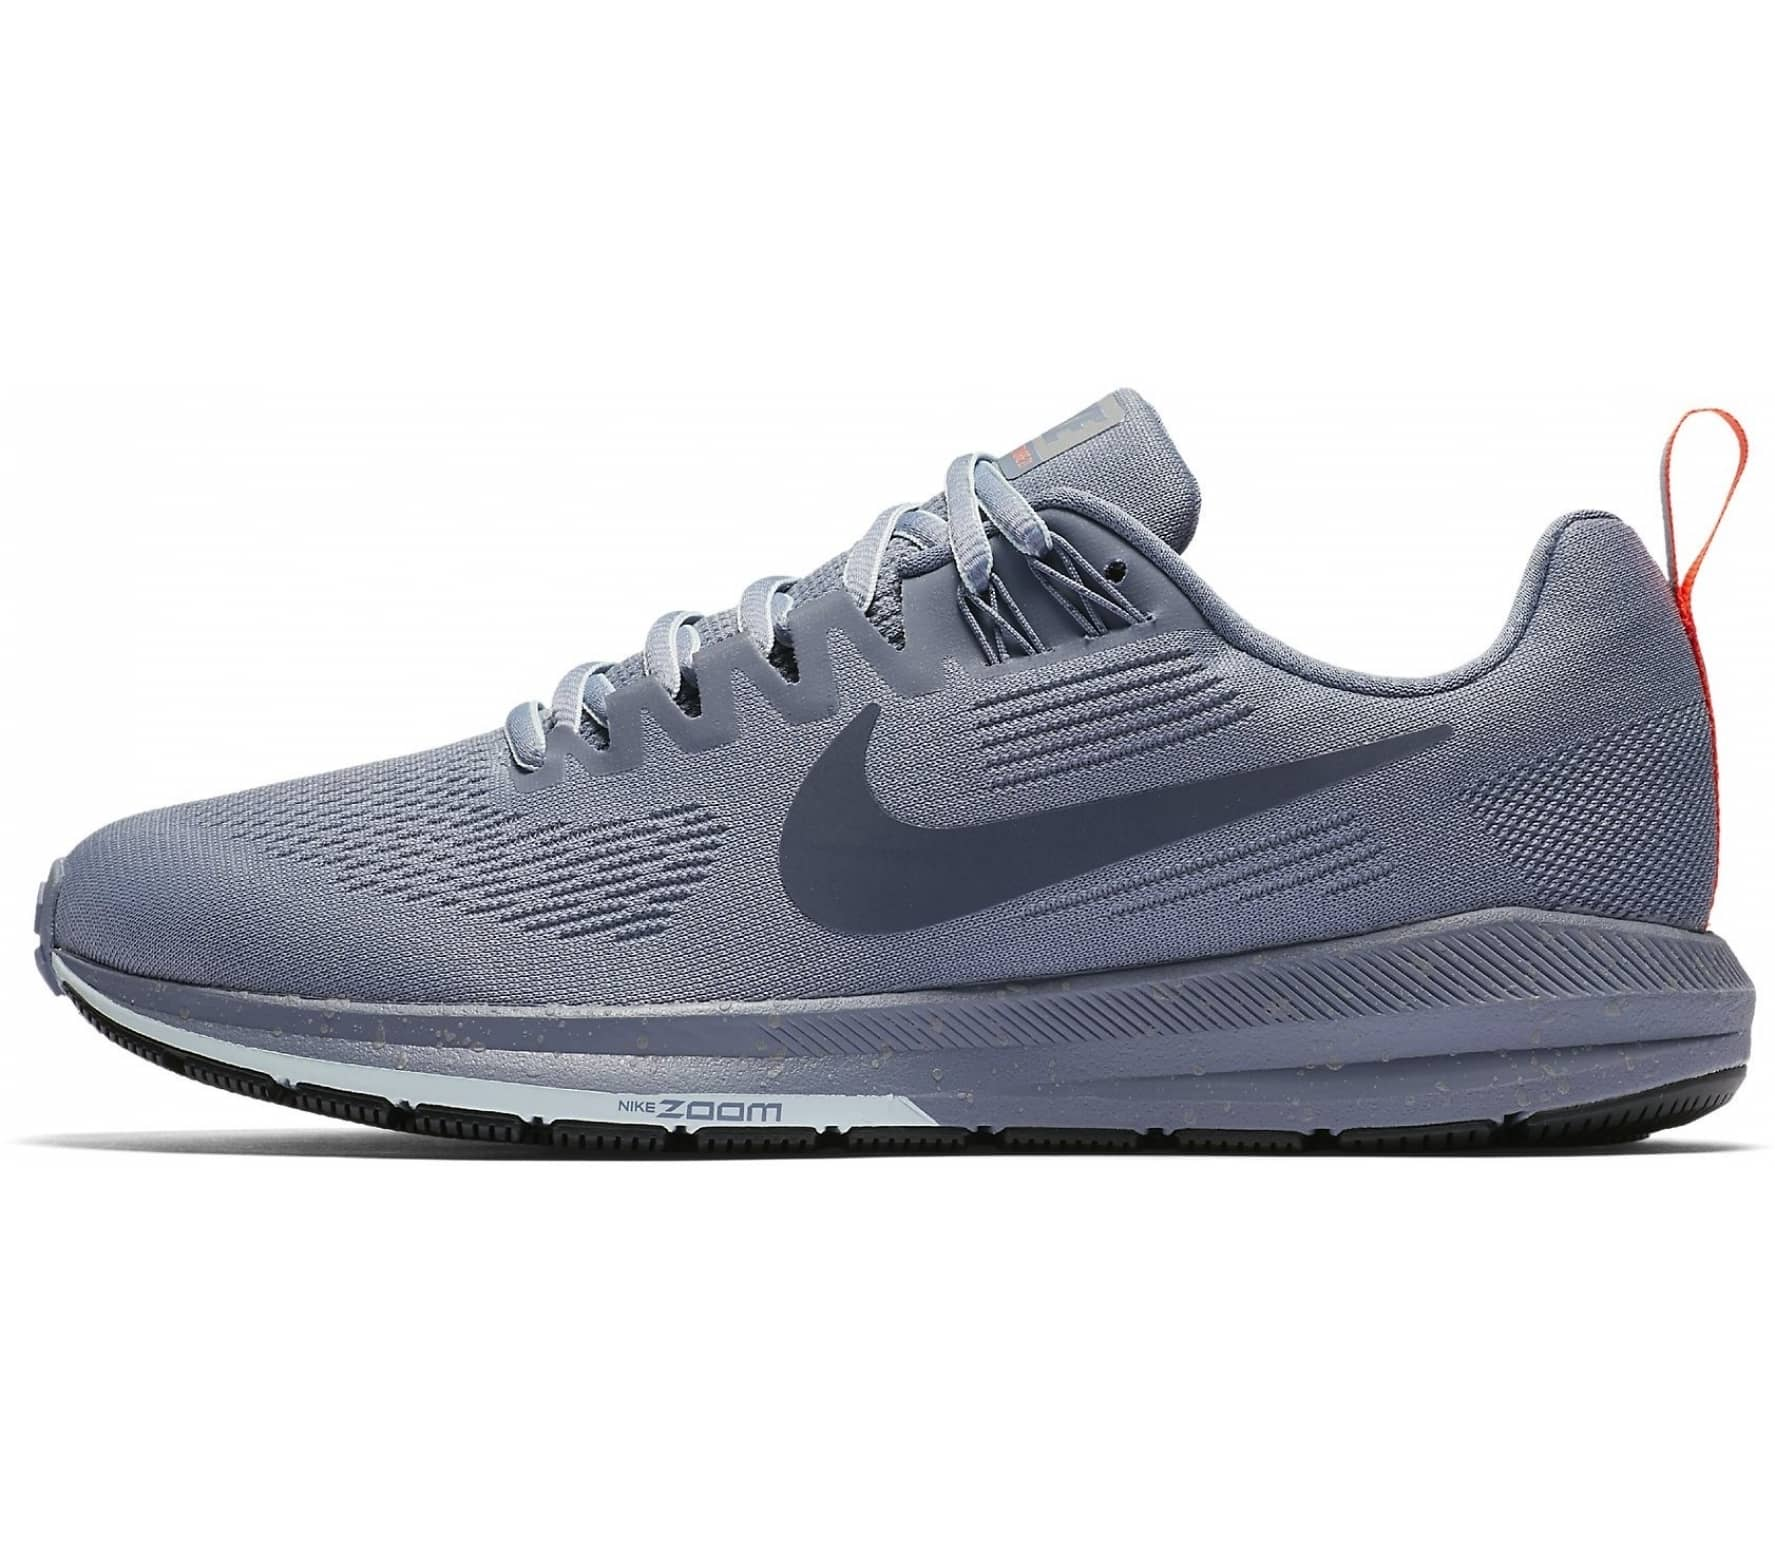 b6f8a6775f377 Nike - Air Zoom Structure 21 Shield women s running shoes (blue grey ...